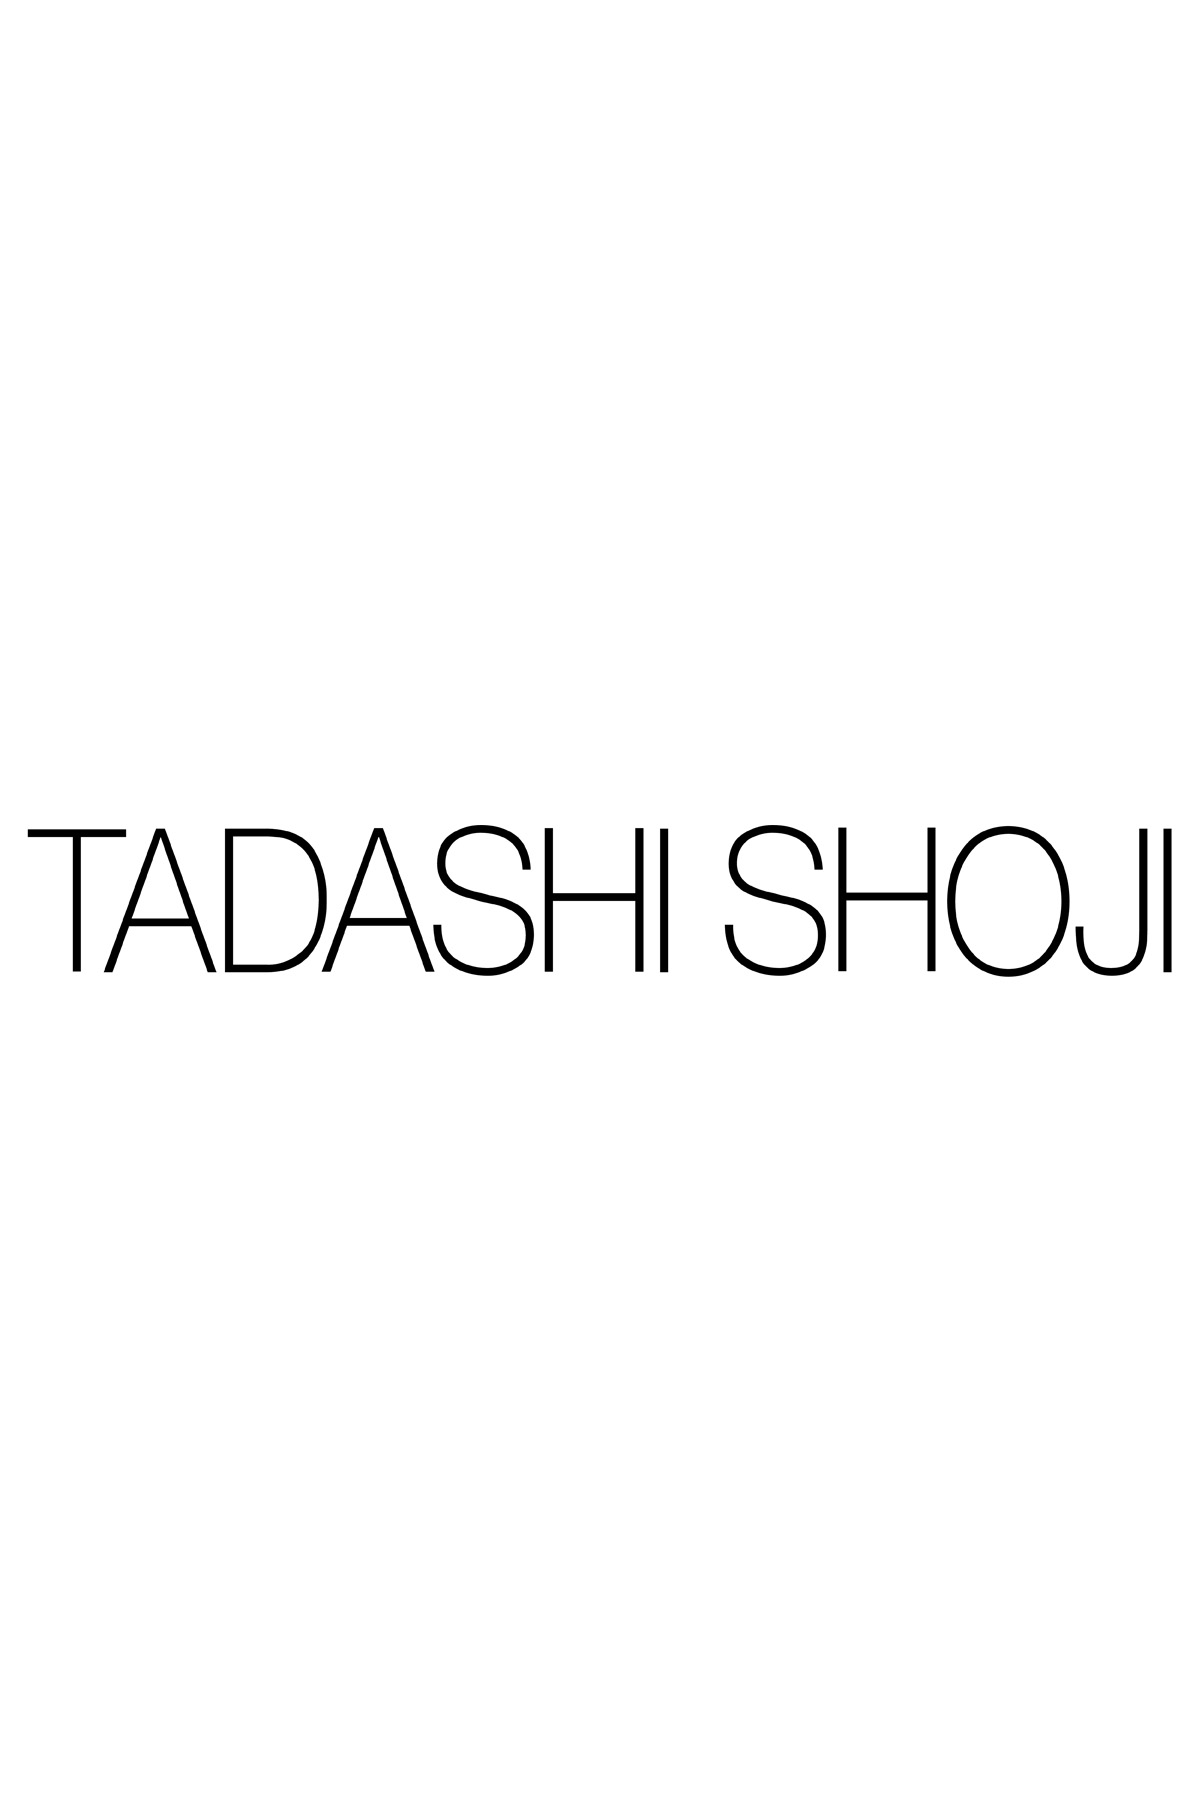 Tadashi Shoji Petite Size - Illusion Lace 3/4 Sleeve Dress with Grosgrain Ribbon Belt - Detail